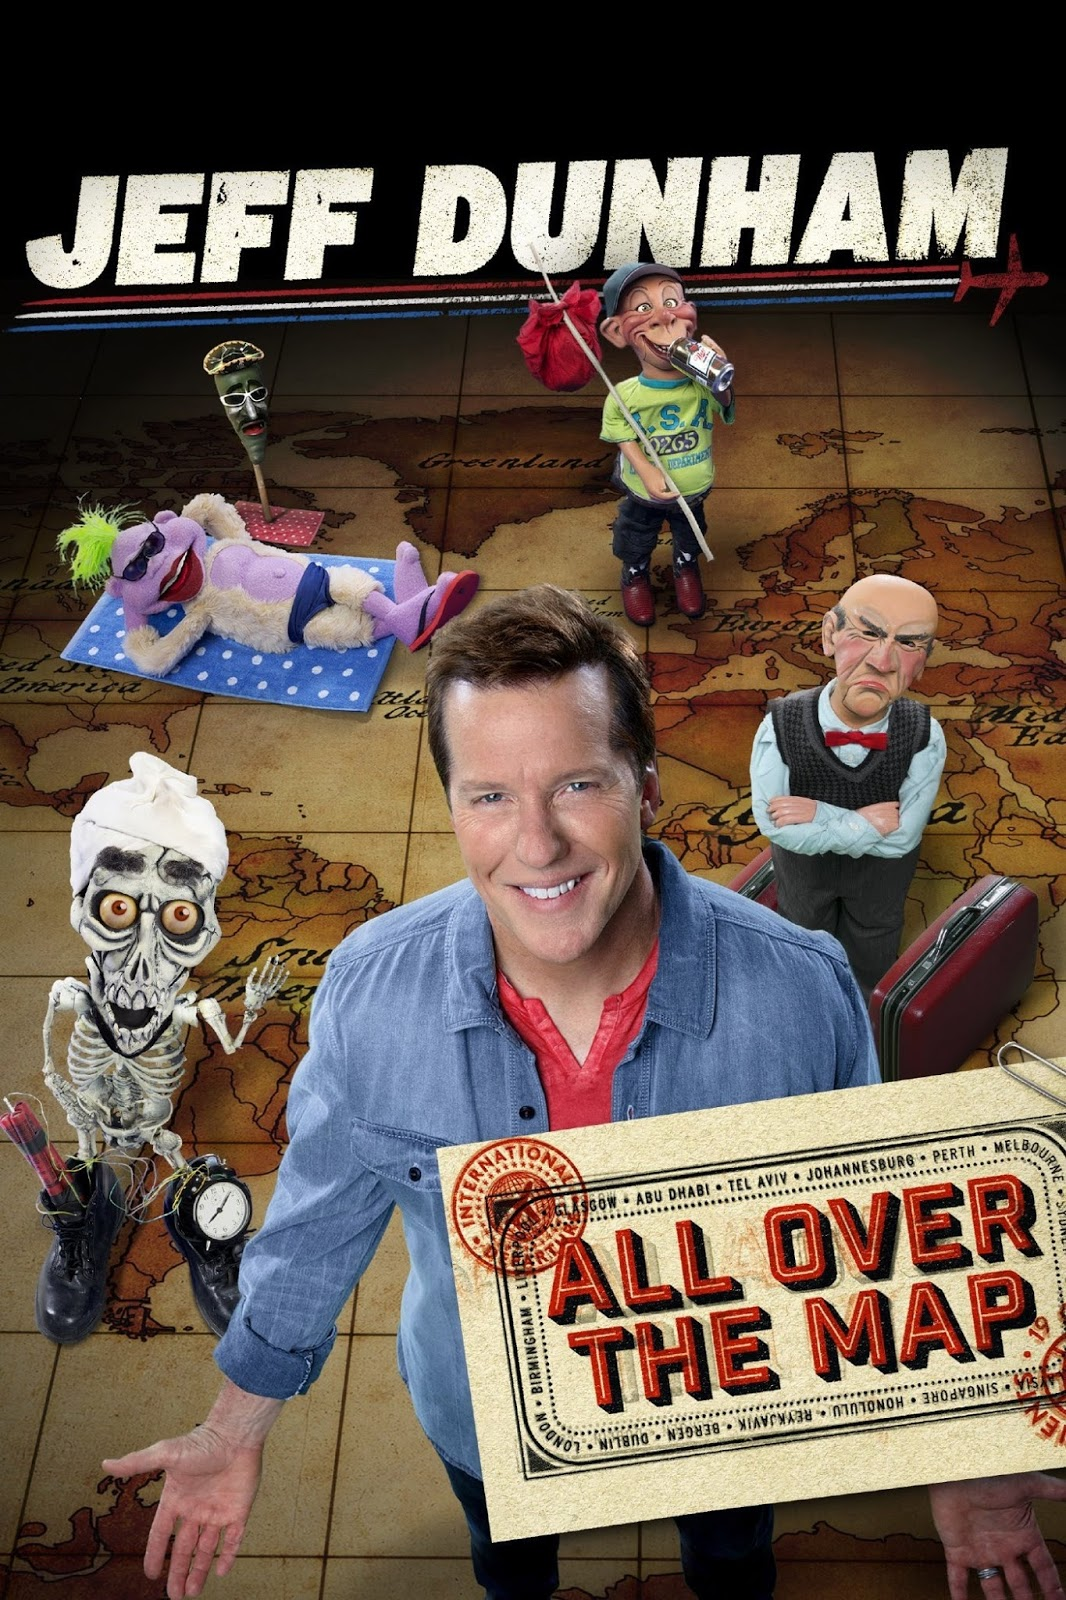 Jeff Dunham: All Over the Map (2014) ταινιες online seires xrysoi greek subs